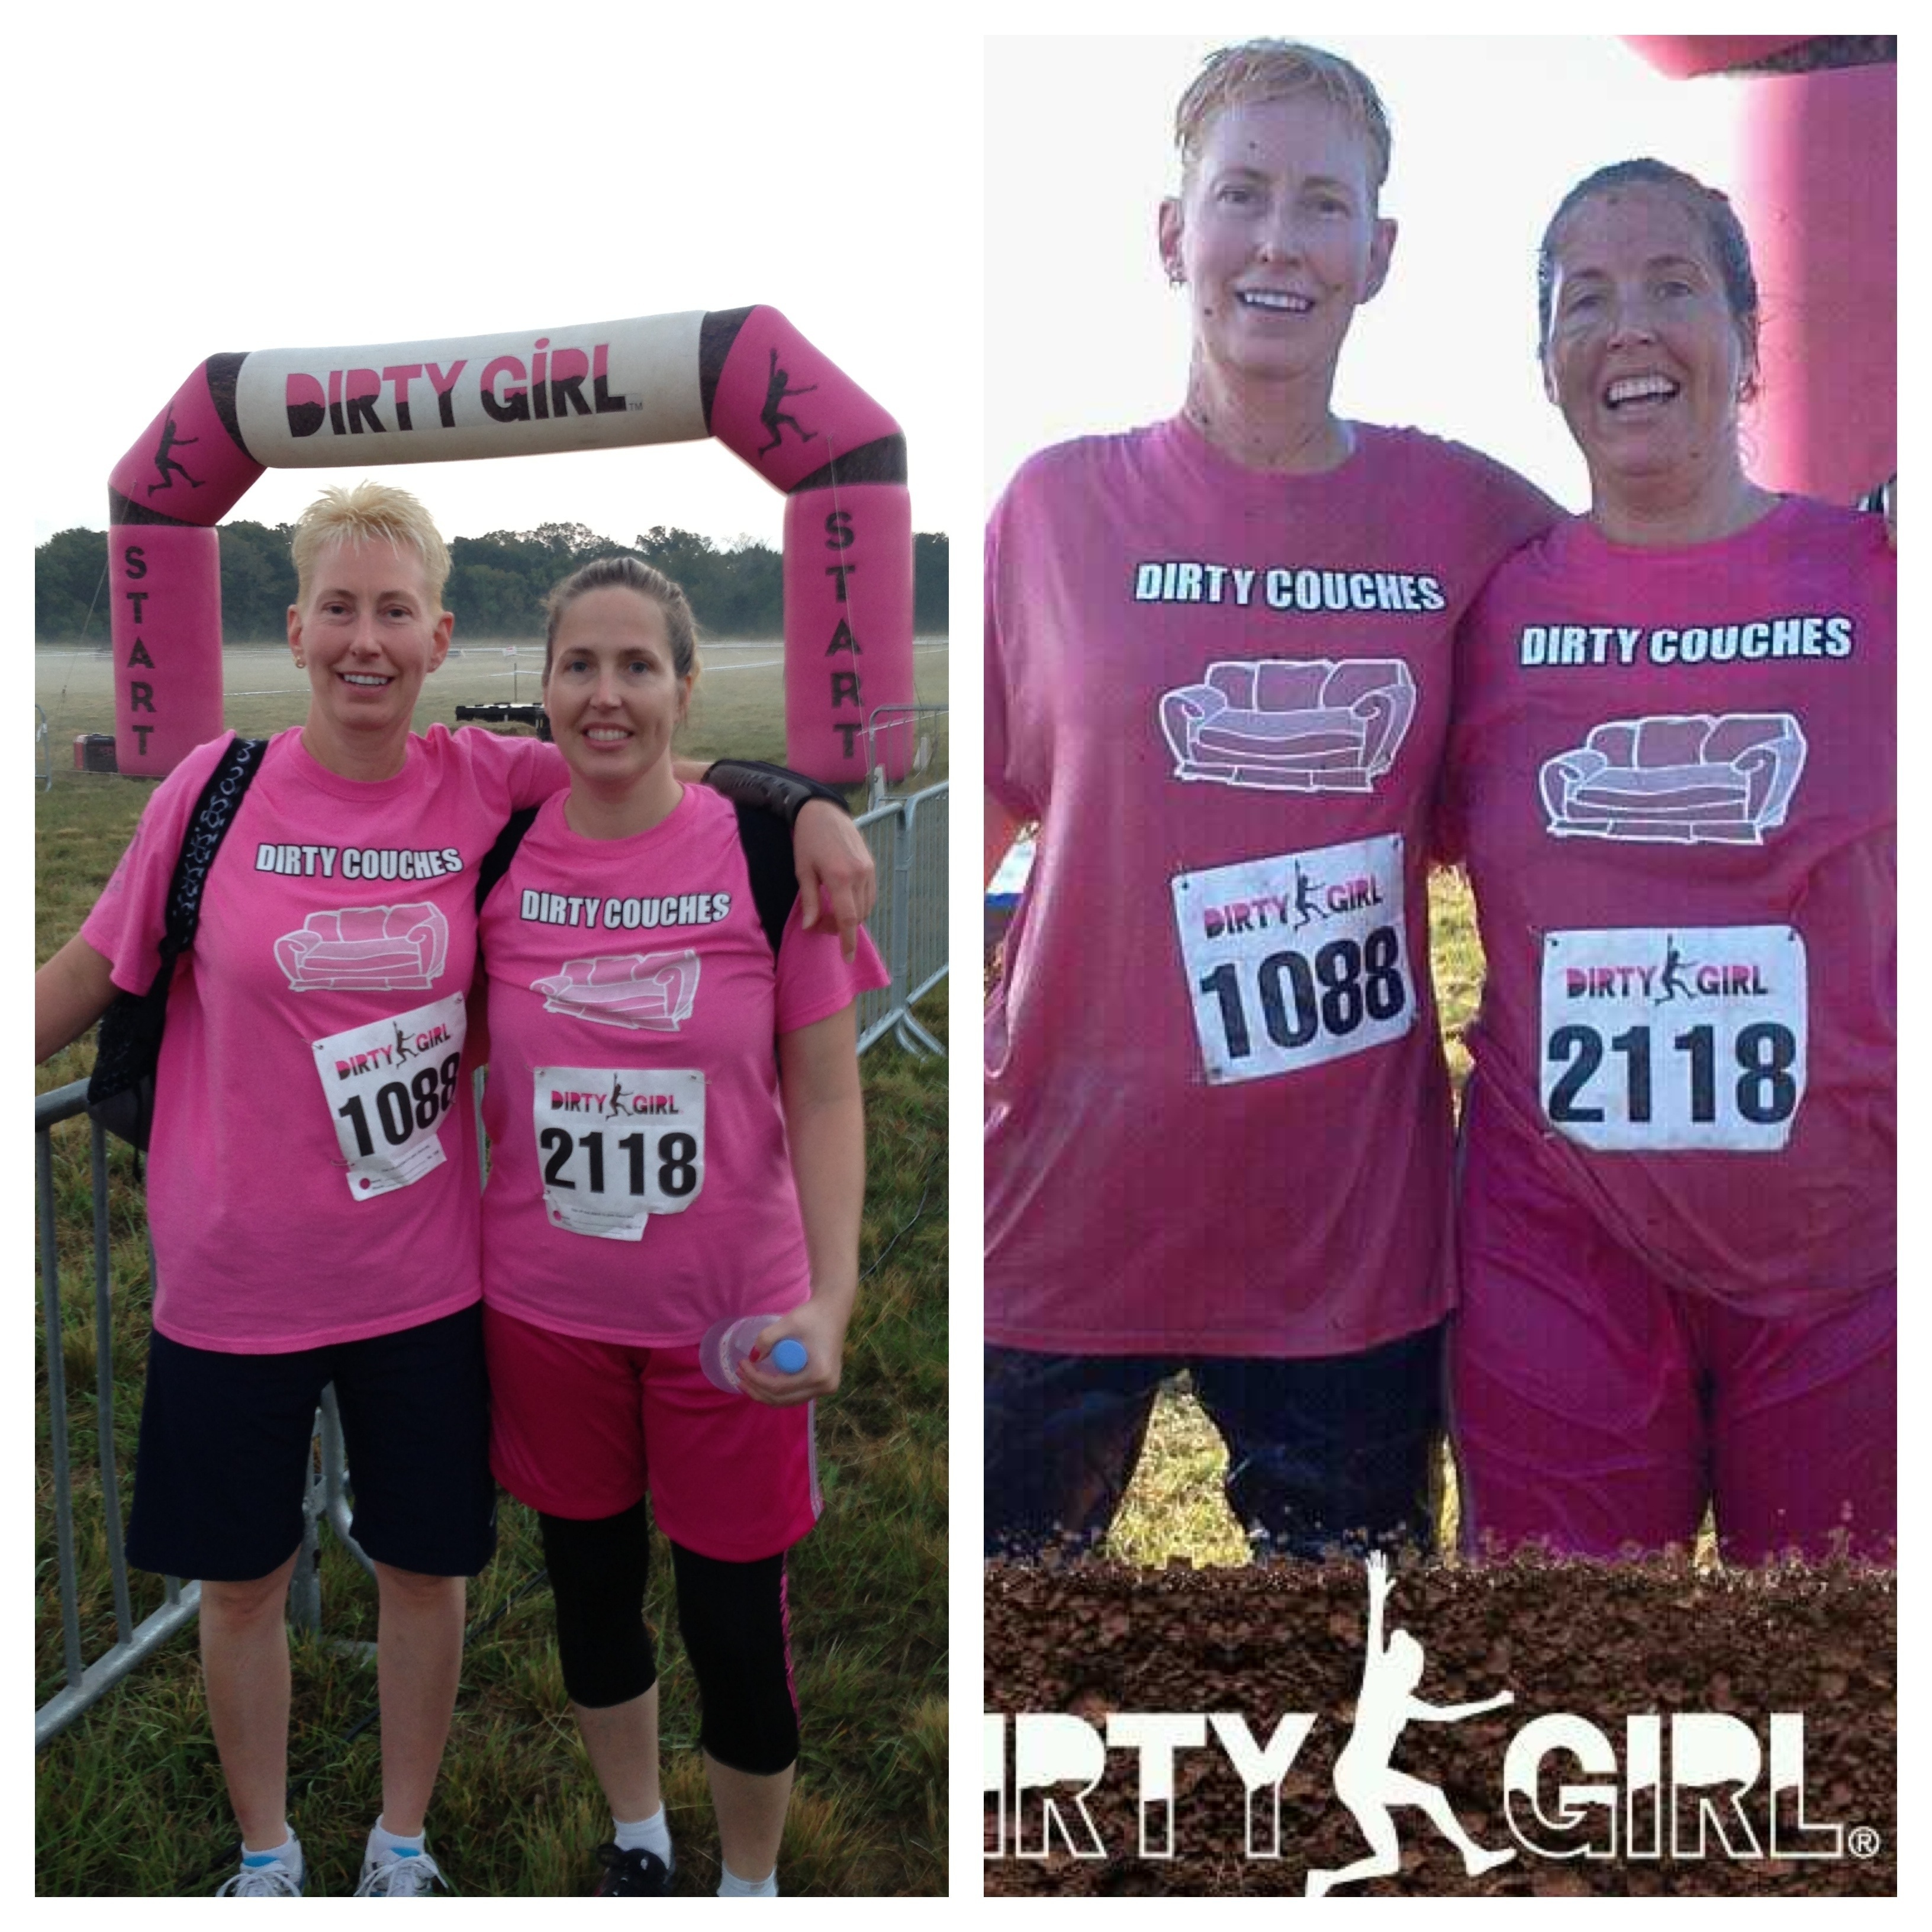 Custom T-Shirts for Before/After Dirty Girl Mud Run - Shirt Design Ideas